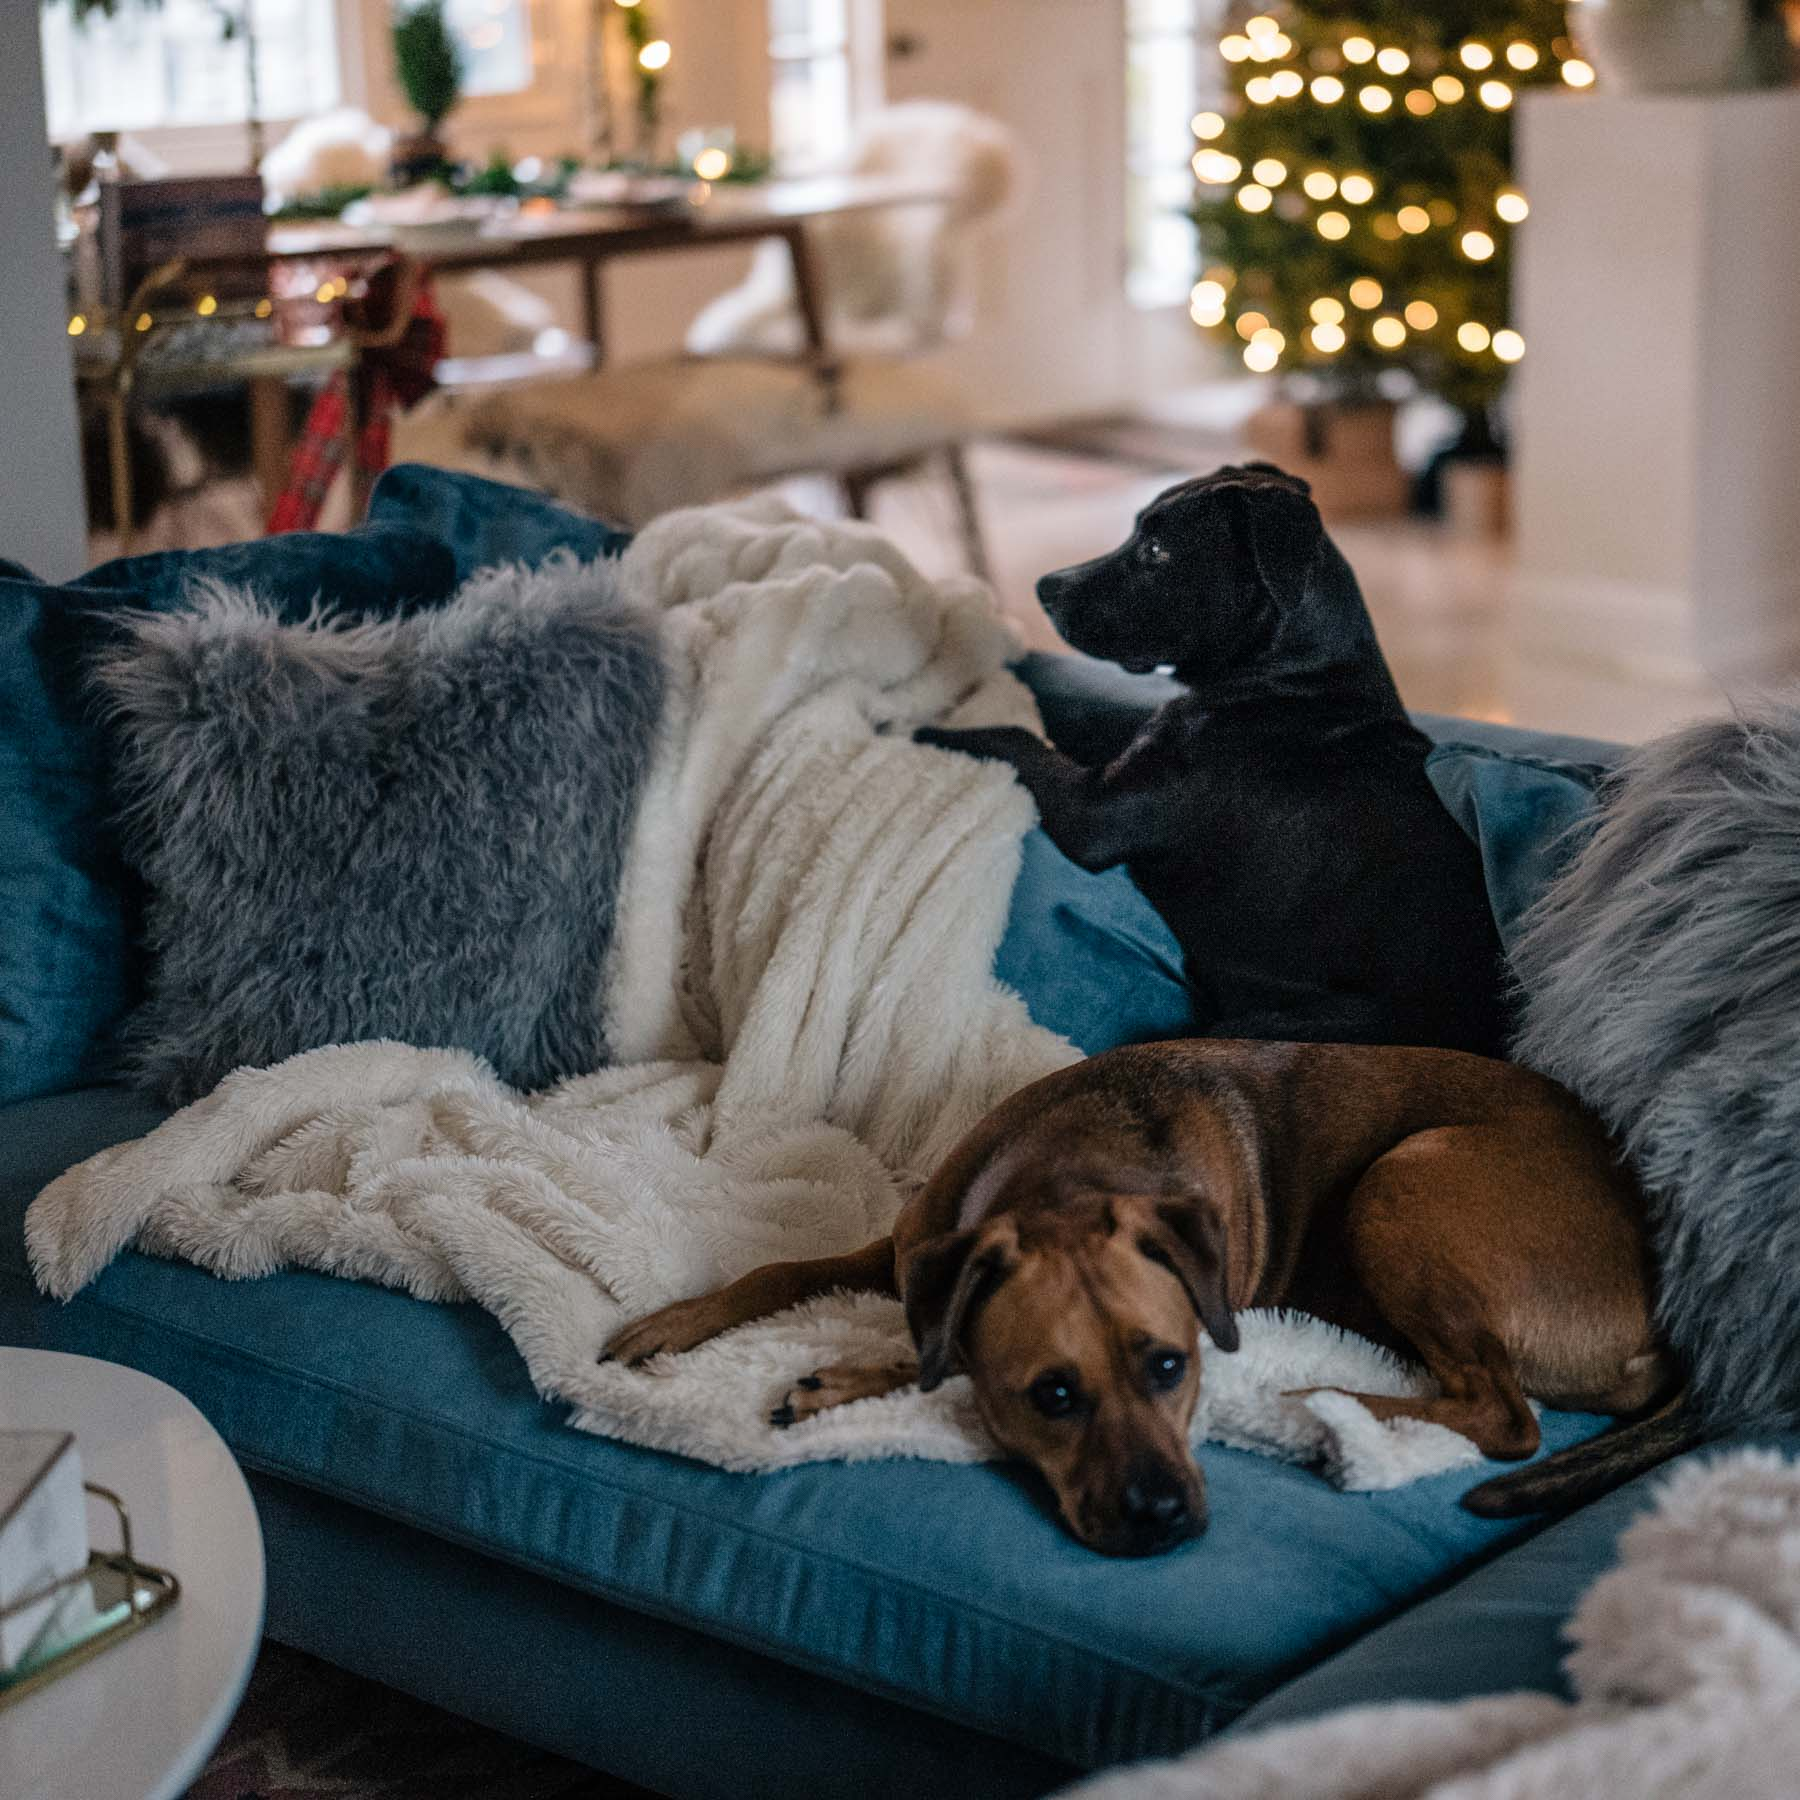 Jess Ann Kirby relaxes at home with her two puppies and favorite Anthropologie throw